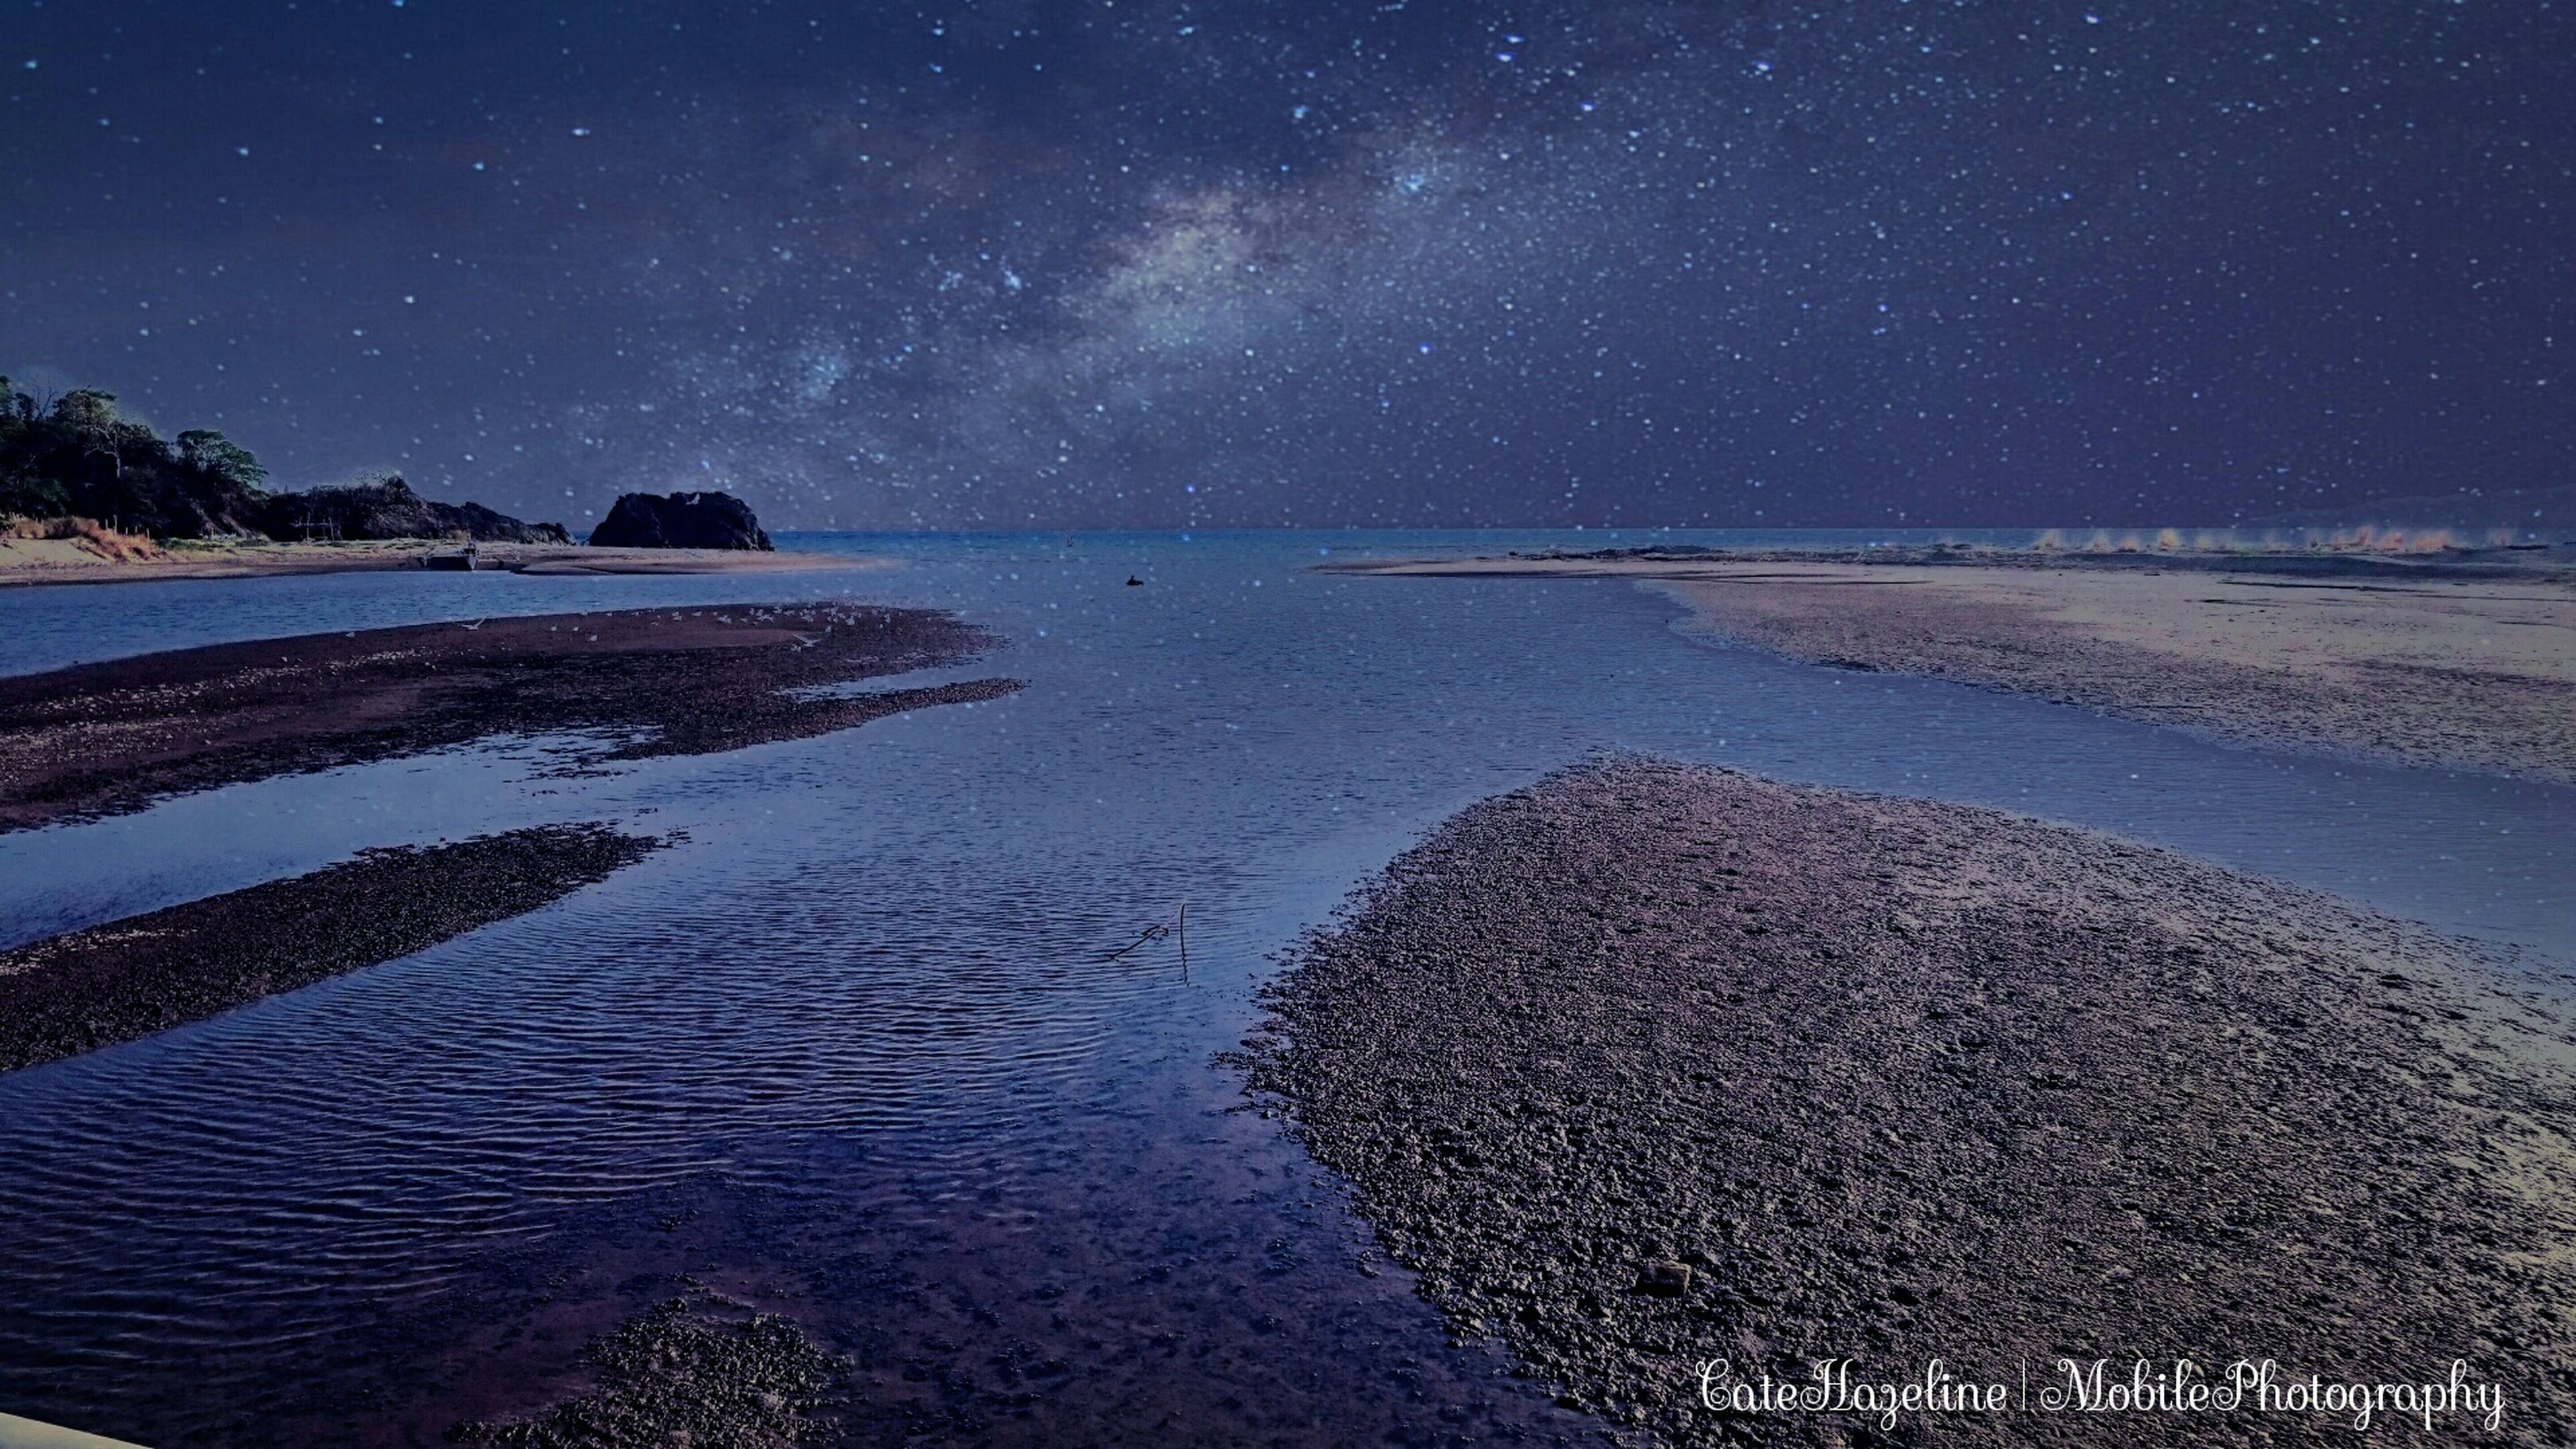 night, scenics, tranquil scene, tranquility, water, beauty in nature, sea, sky, nature, star - space, astronomy, idyllic, blue, beach, star field, majestic, outdoors, no people, star, remote